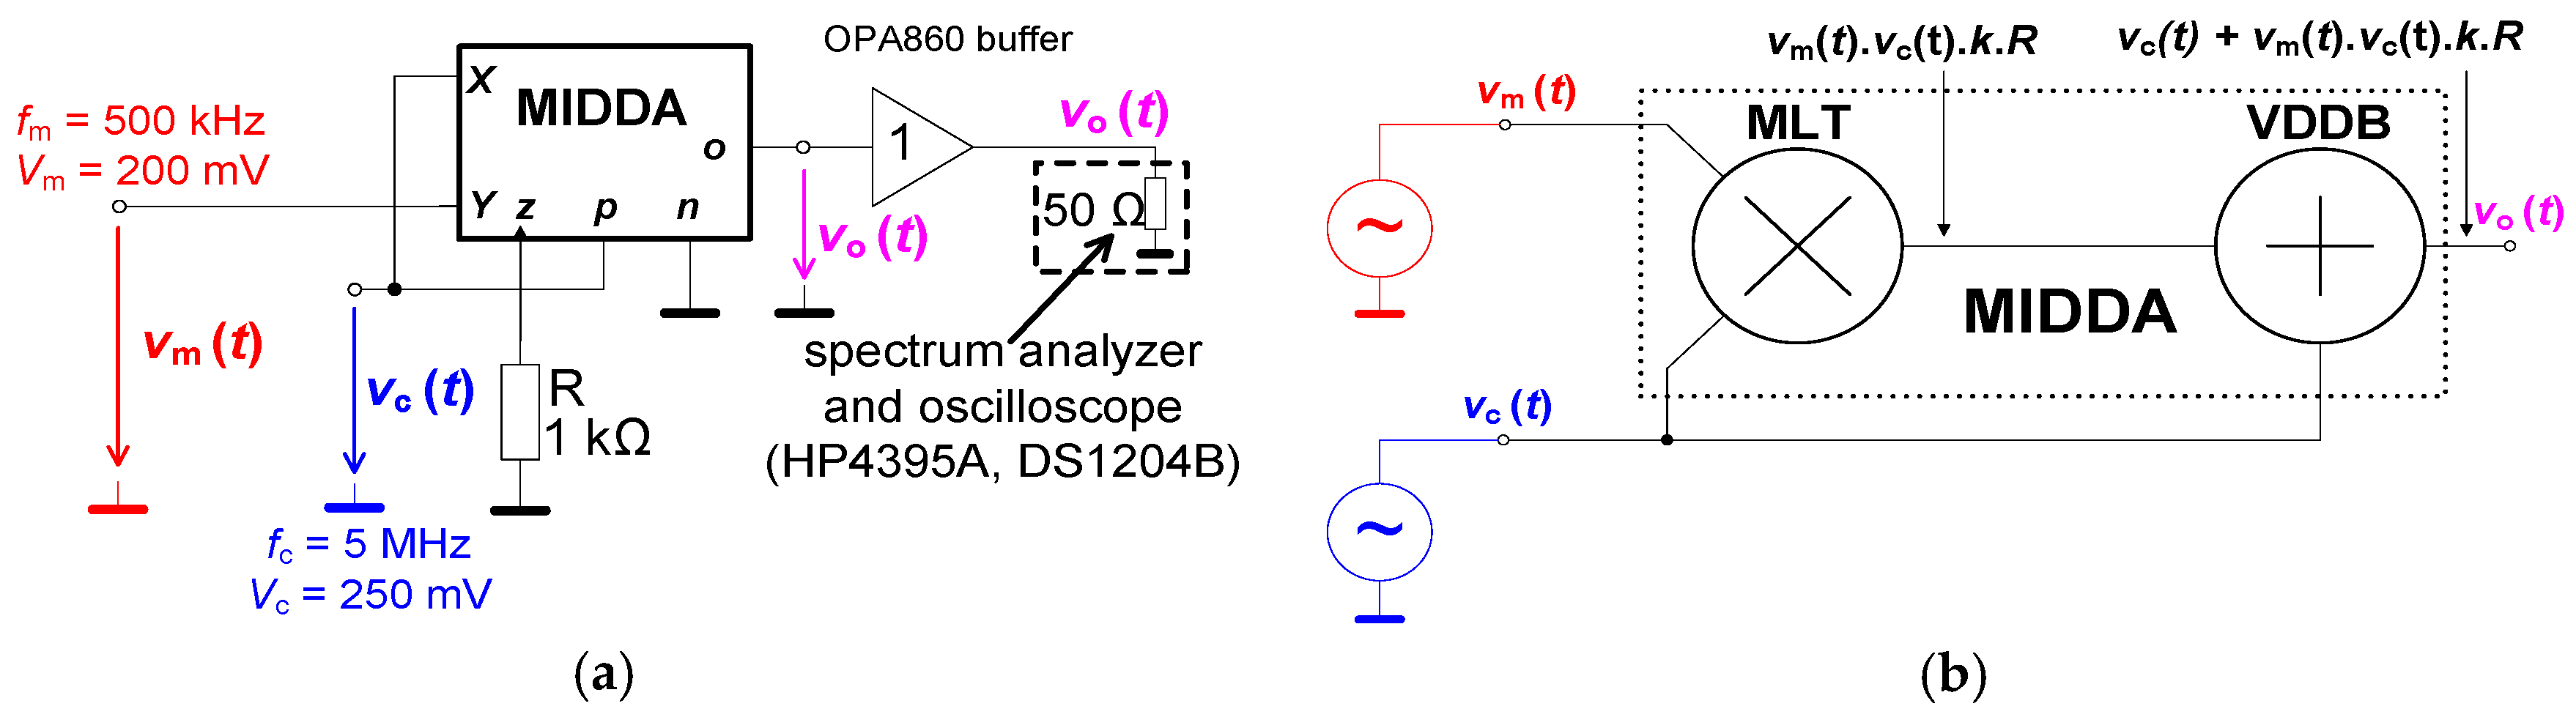 Applied Sciences Free Full Text A Cmos Multiplied Input Fmtransmittercircuitdiagrampng No